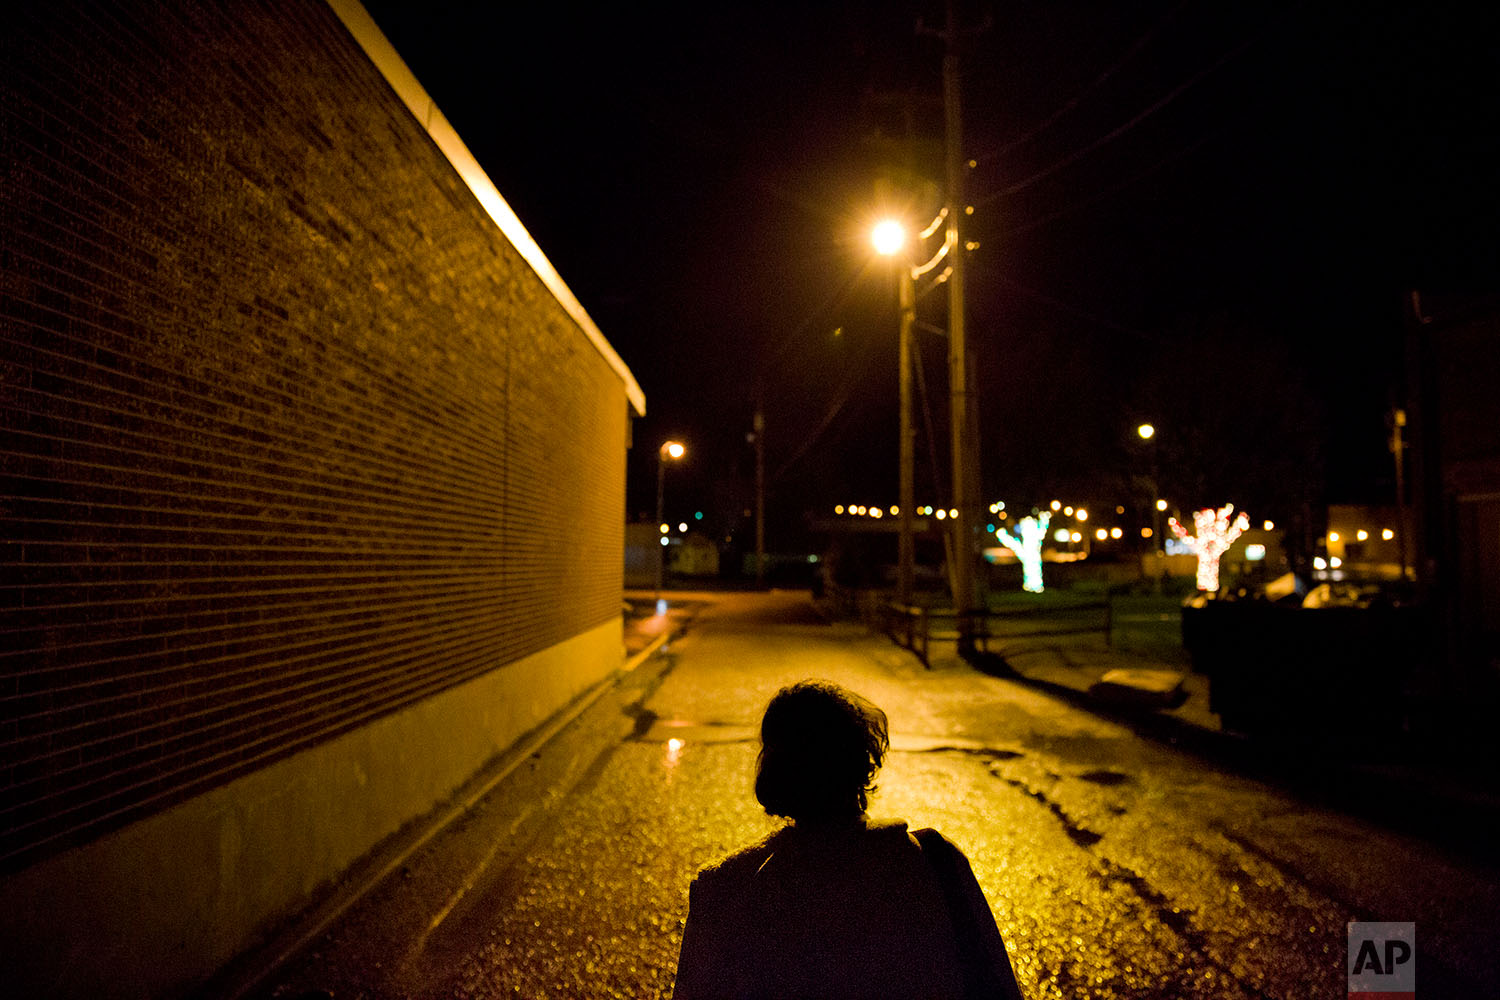 Tammy Perry walks through the street in LaFollette, Tenn., where she is currently staying after getting out of jail, Monday, April 23, 2018. (AP Photo/David Goldman)